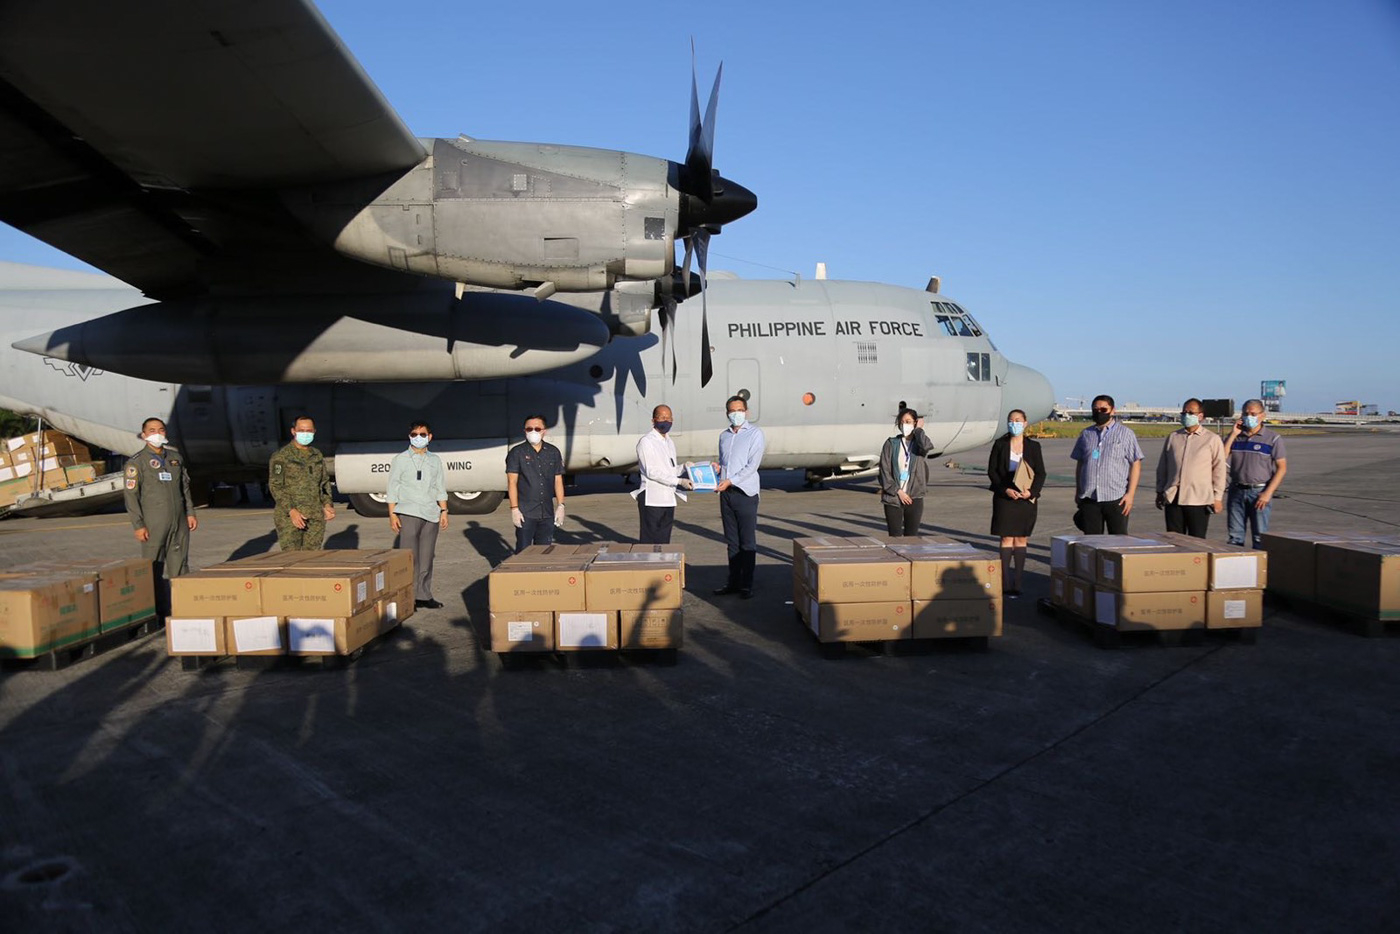 DELIVERED. The Armed Forces of the Philippines receives a donation of medical supplies and equipment on March 21, 2020. Photo from the Armed Forces of the Philippines